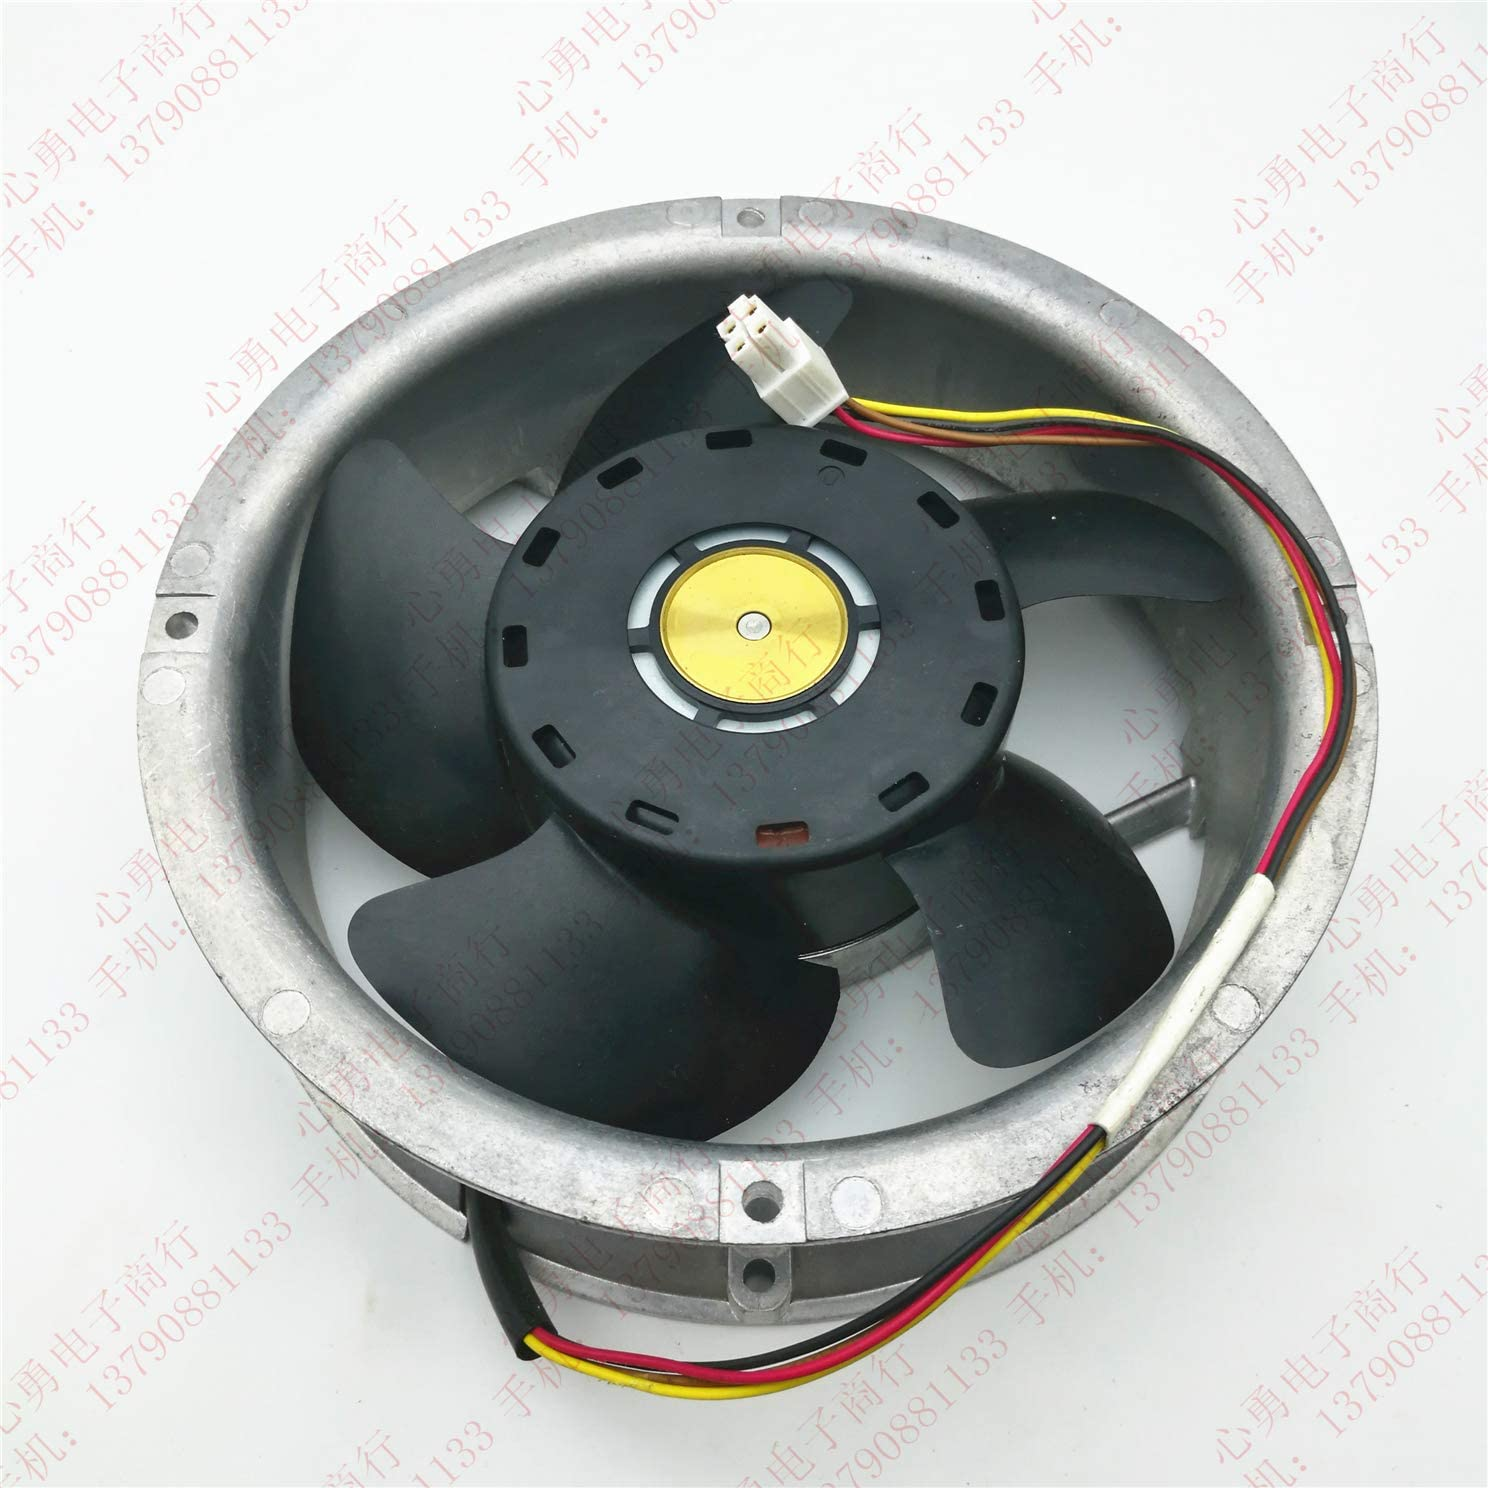 s Yuebangkeji for Original San Ace Sanyo 109E1724V5K03 4wire Axial Fan DC24V 172x172x51mm 1.3A 1 Item